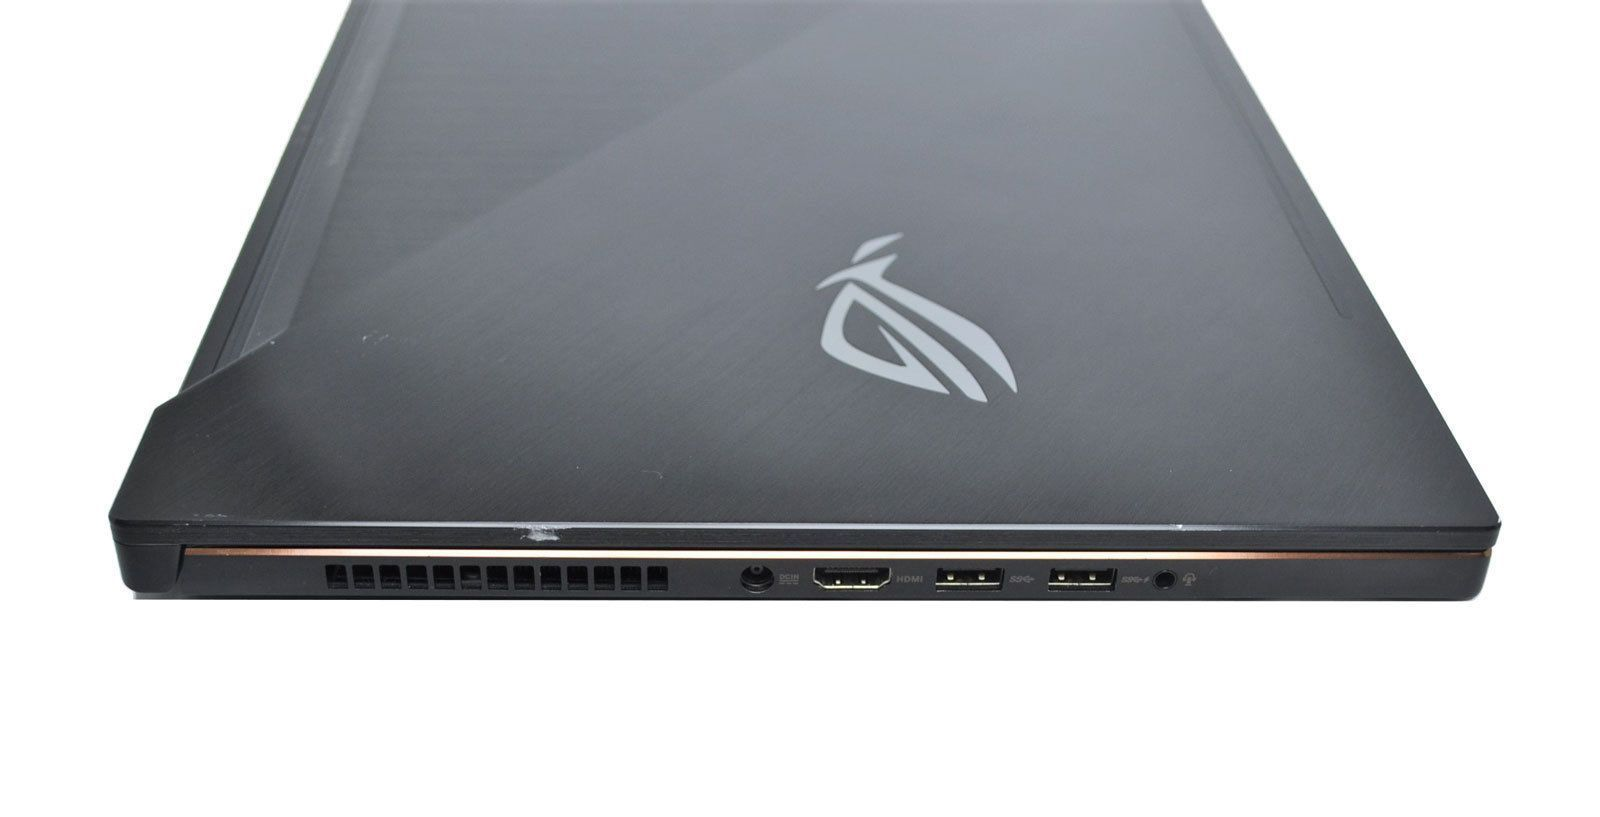 ASUS ROG Zephyrus GX501 Gaming Laptop: GTX 1070, Core i7-7700HQ, 512GB, 16GB - CruiseTech